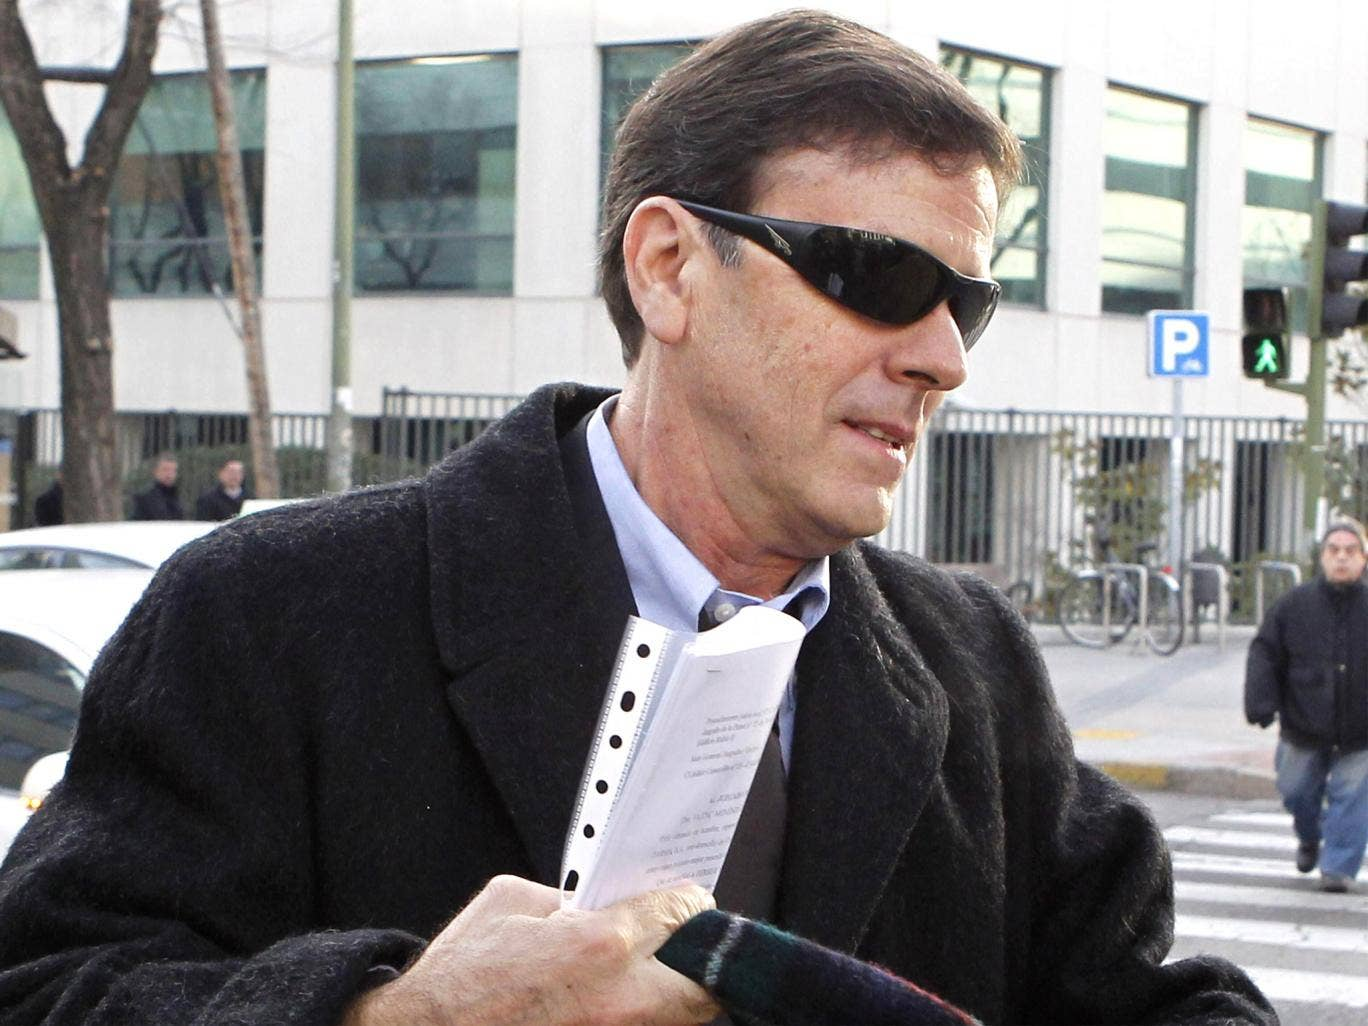 Dr Eufemiano Fuentes is on trial in Spain for blood doping